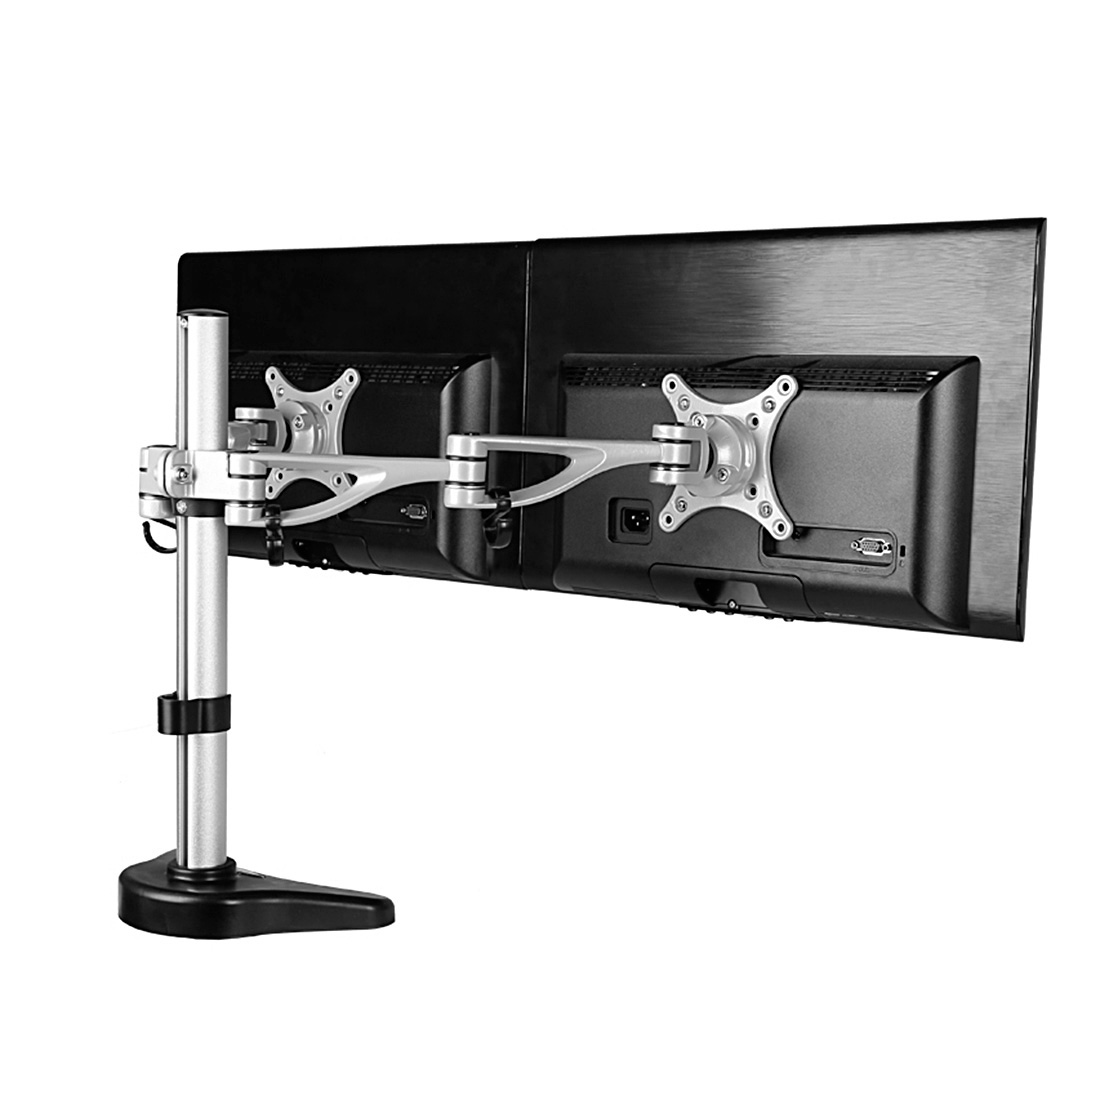 FLEXIMOUNTS M13 Clamp Dual Monitor arm Desk Mounts Monitor Stand for